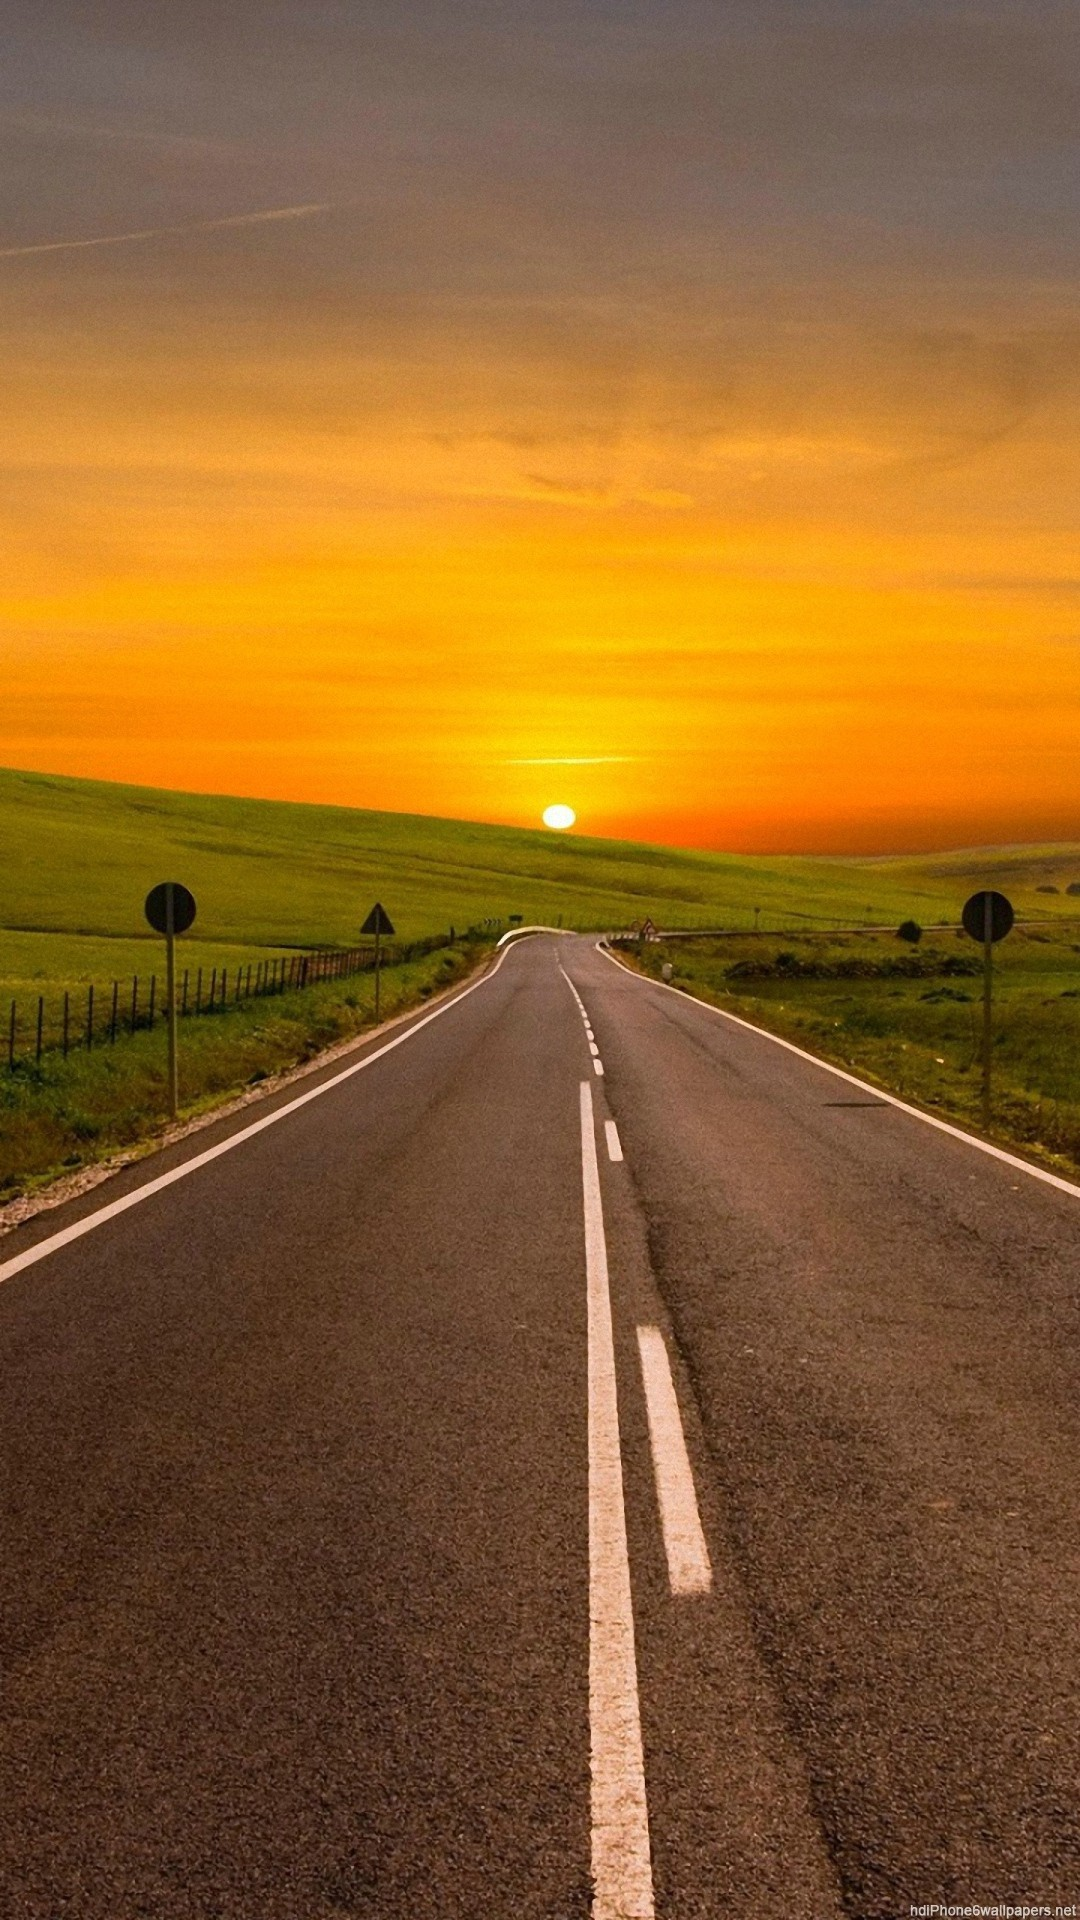 Road Hd Wallpapers For Iphone 7 Wallpaperspictures